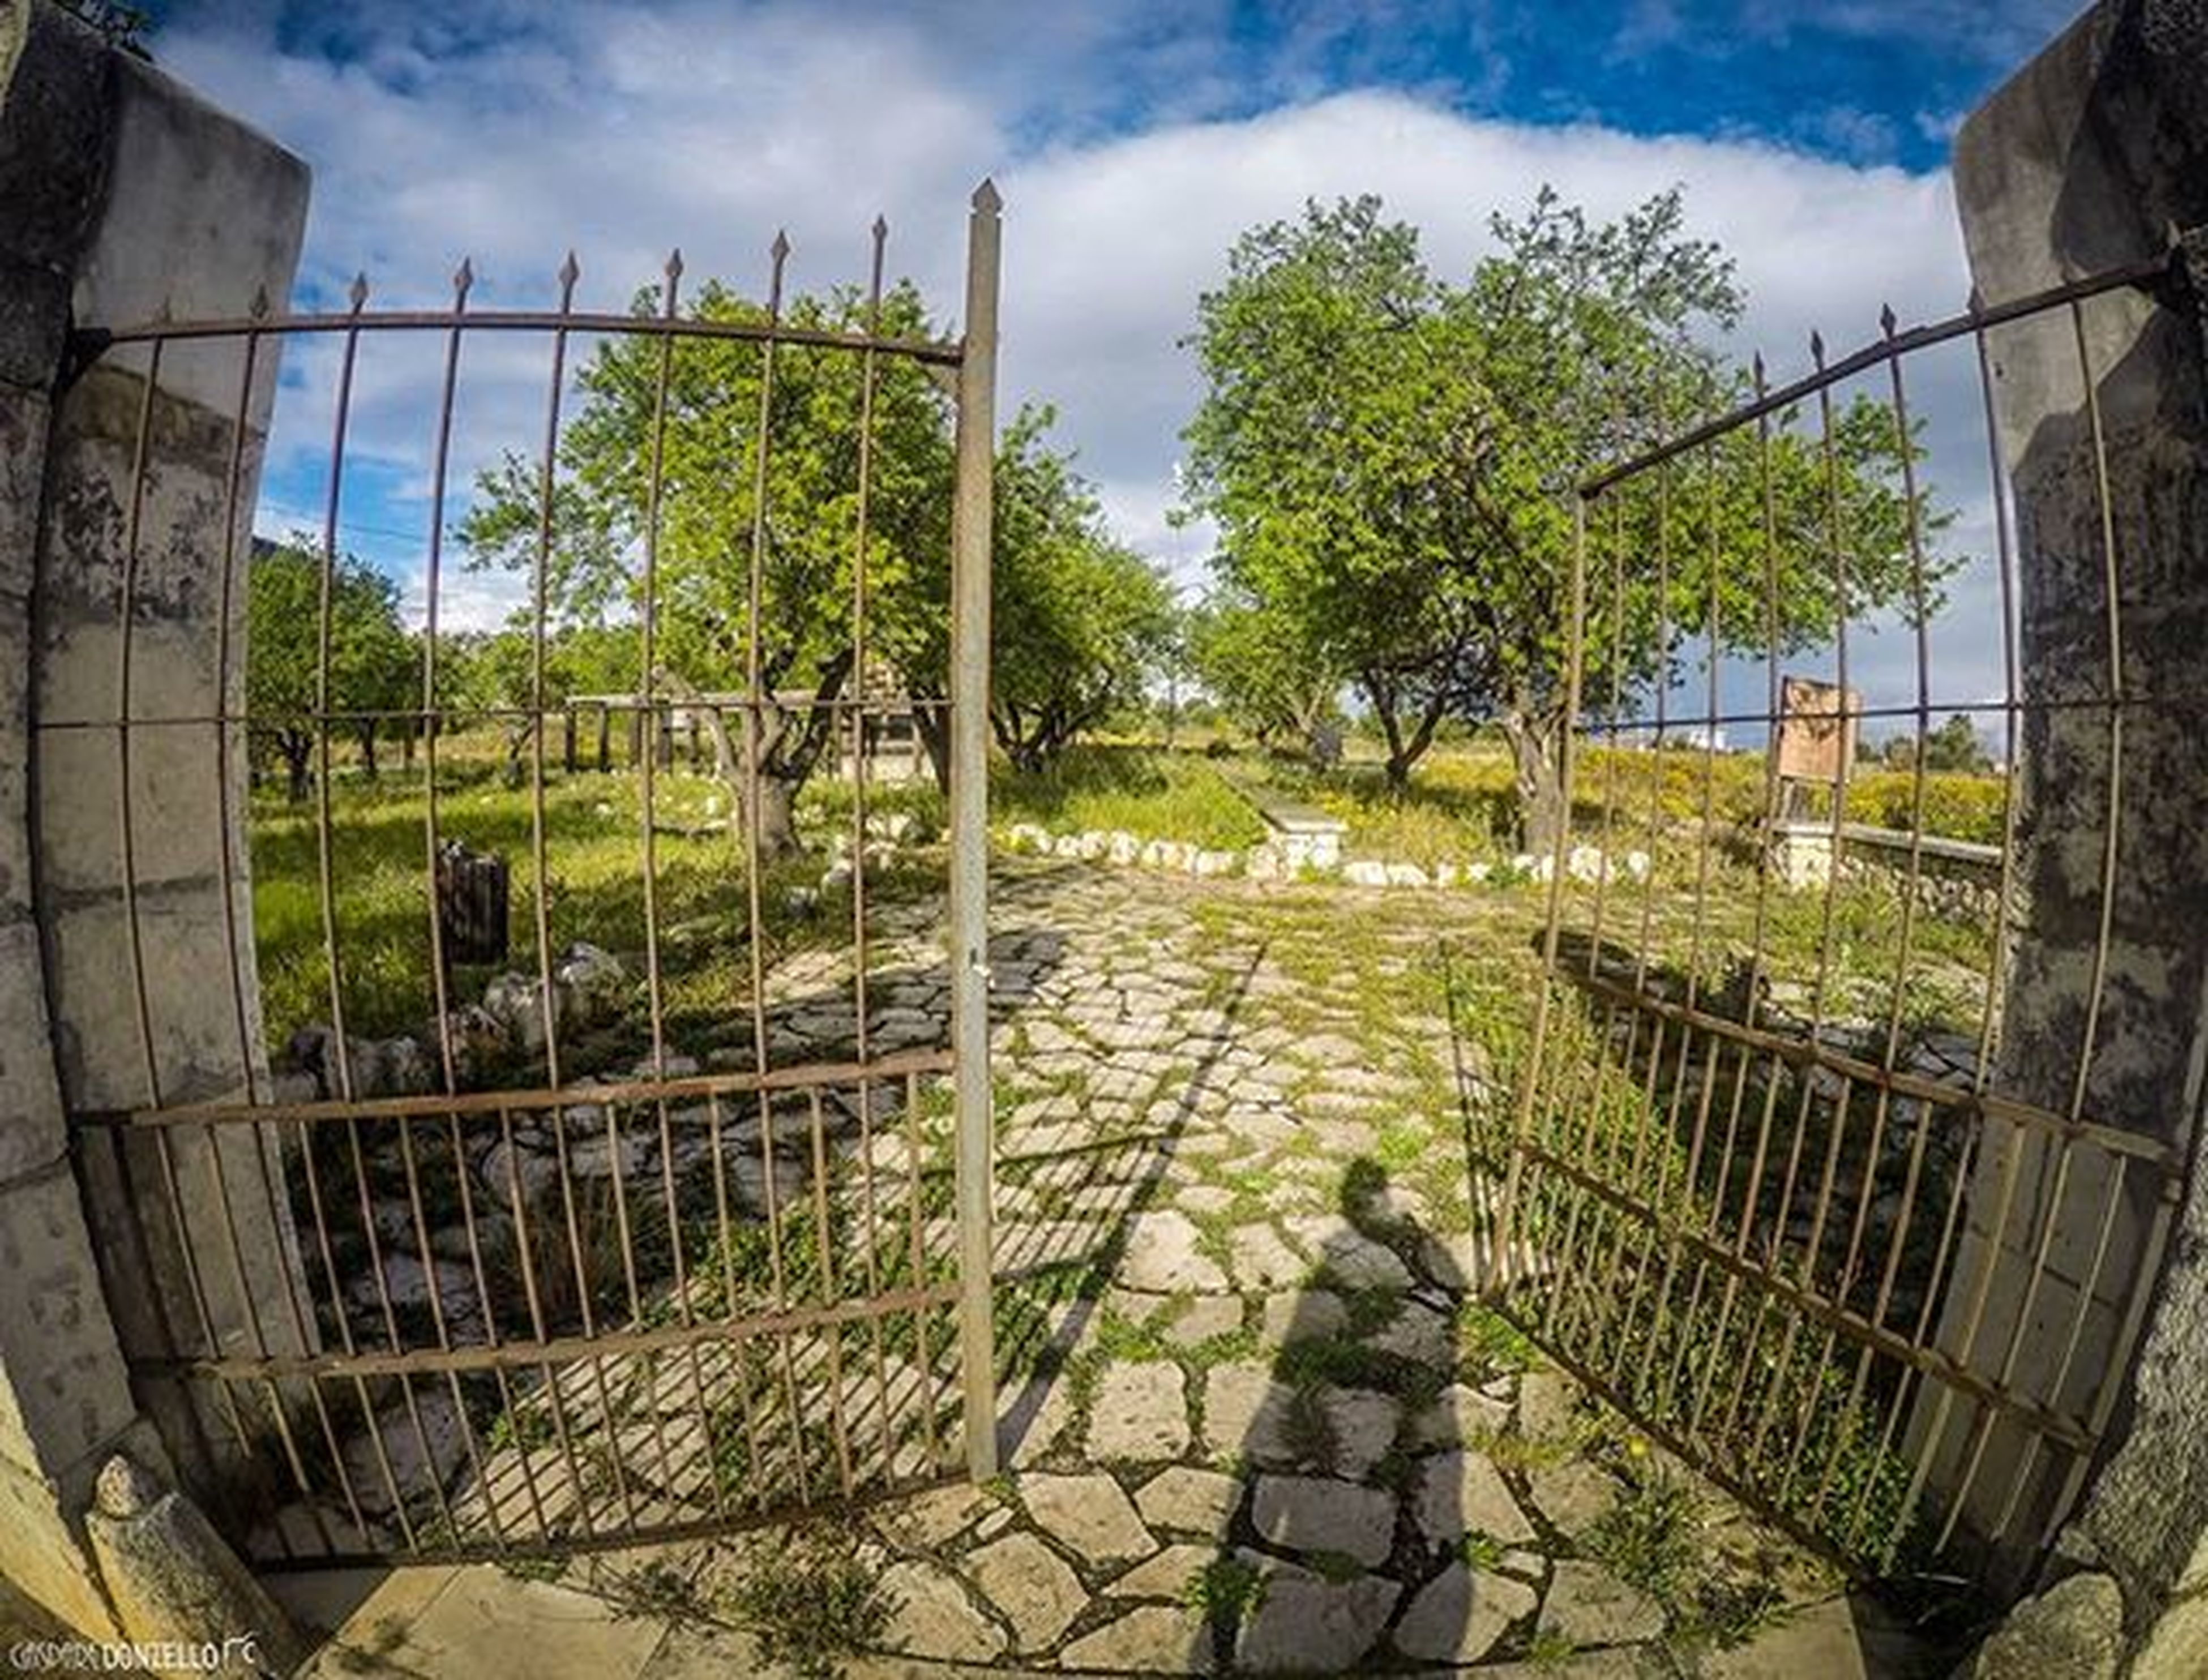 architecture, built structure, sky, tree, building exterior, fence, cloud - sky, green color, growth, day, cloud, railing, plant, grass, sunlight, outdoors, nature, metal, no people, wall - building feature